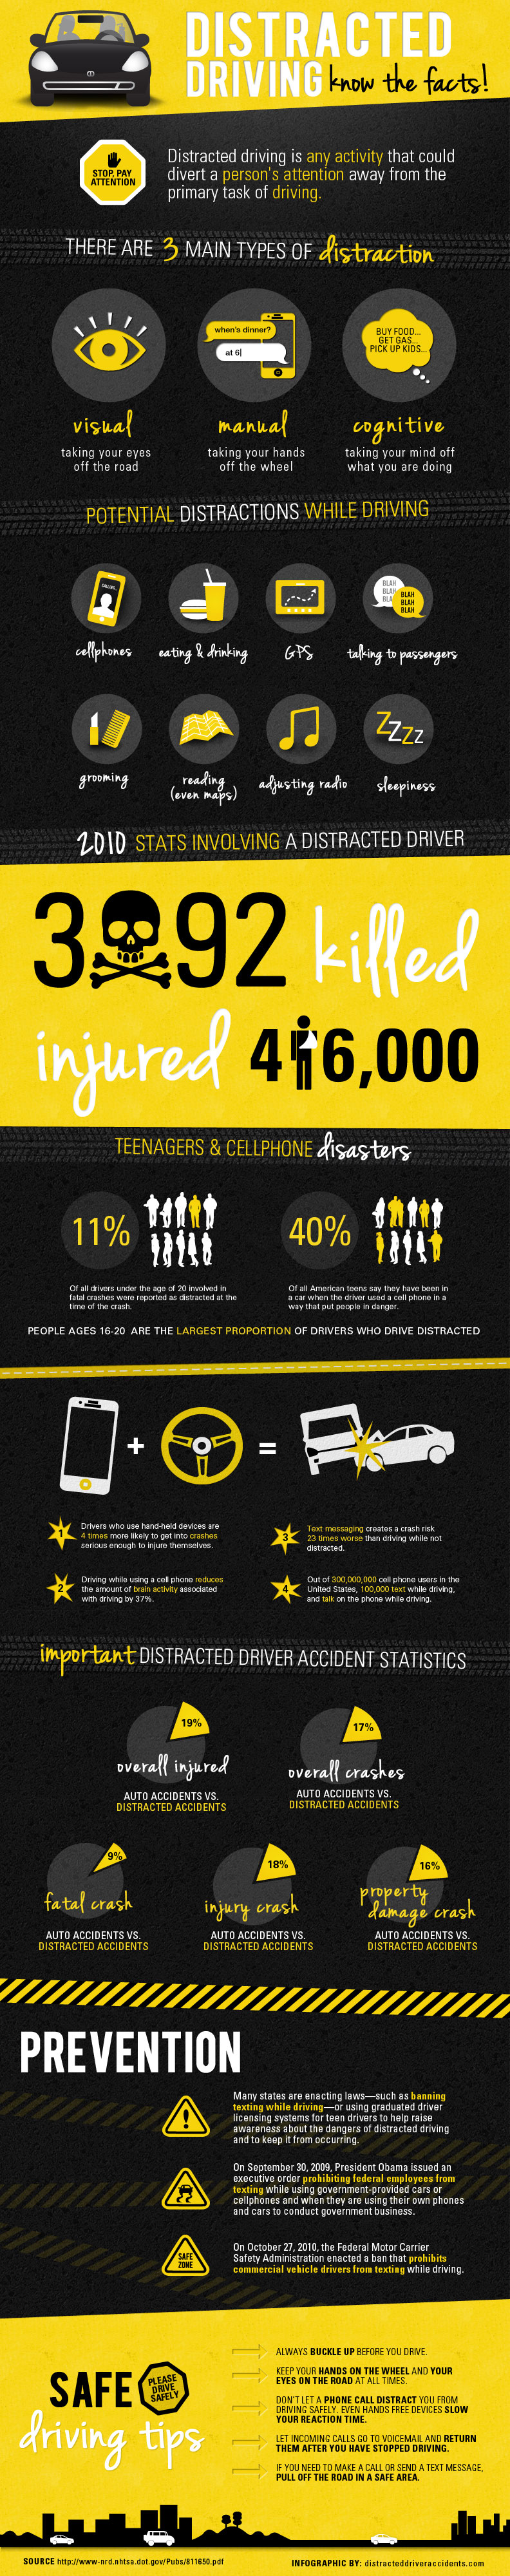 distracted while driving Many distractions exist while driving, but cell phones are a top distraction  because so many drivers use them for long periods of time each day.